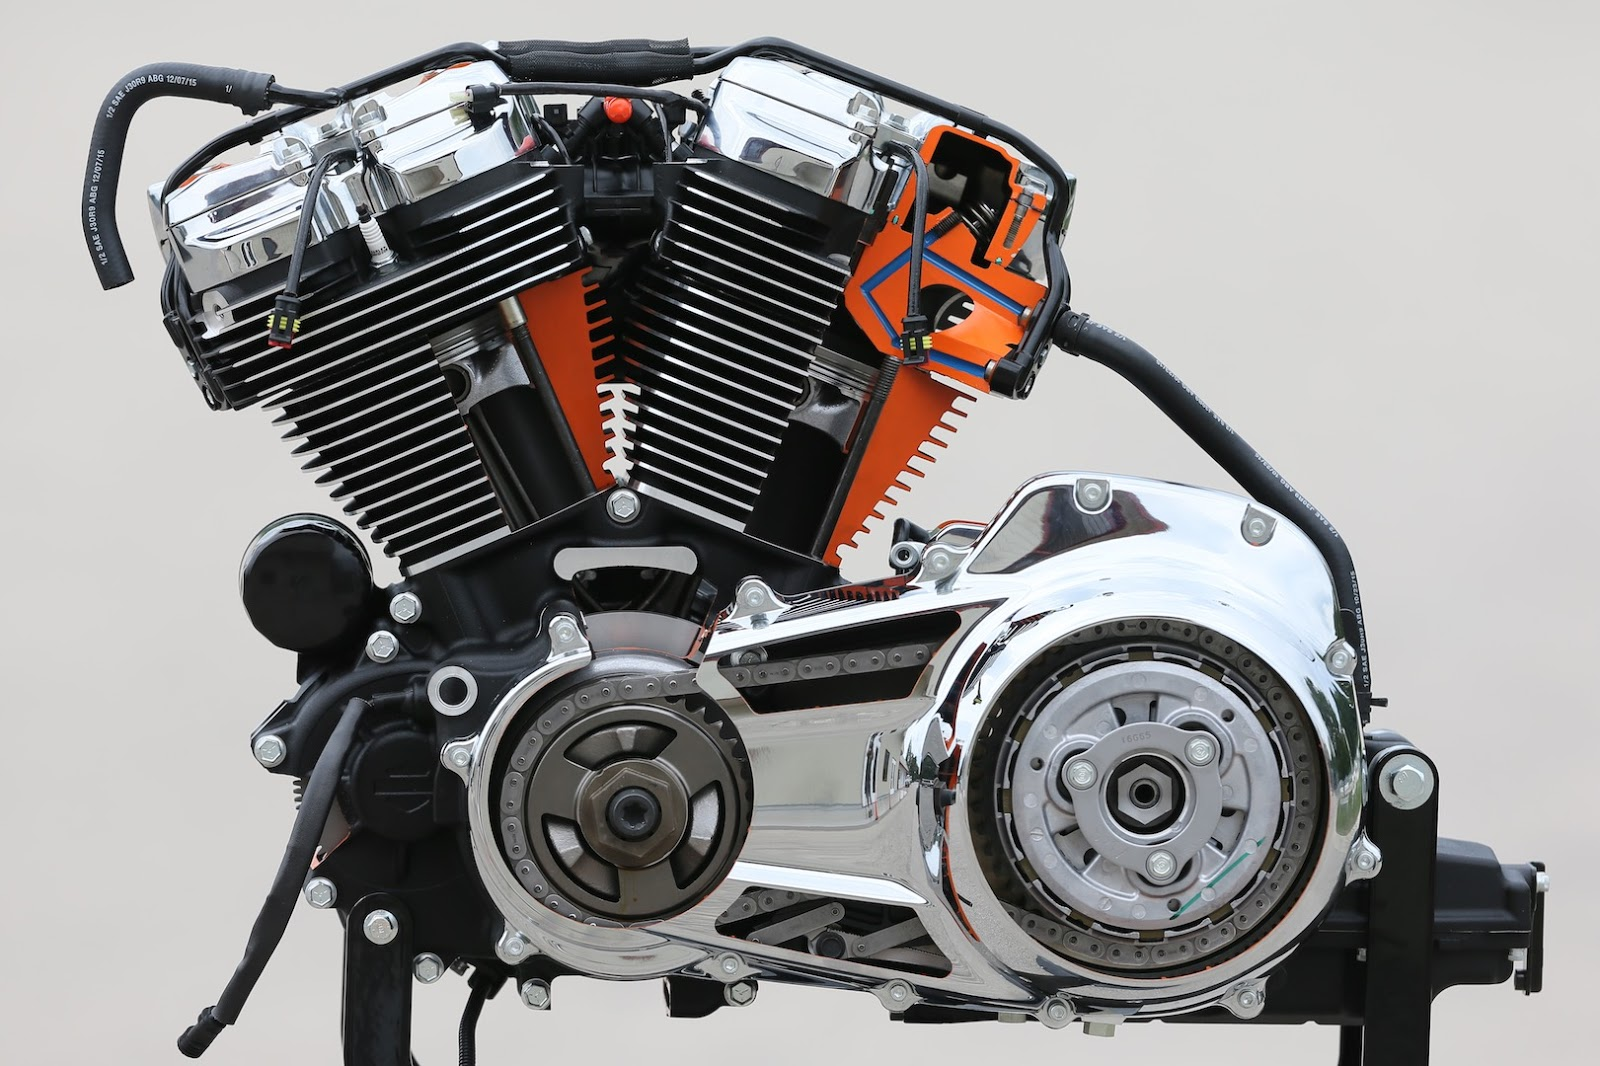 blog of the biker 11 facts about the harley davidson milwaukee eight engine. Black Bedroom Furniture Sets. Home Design Ideas